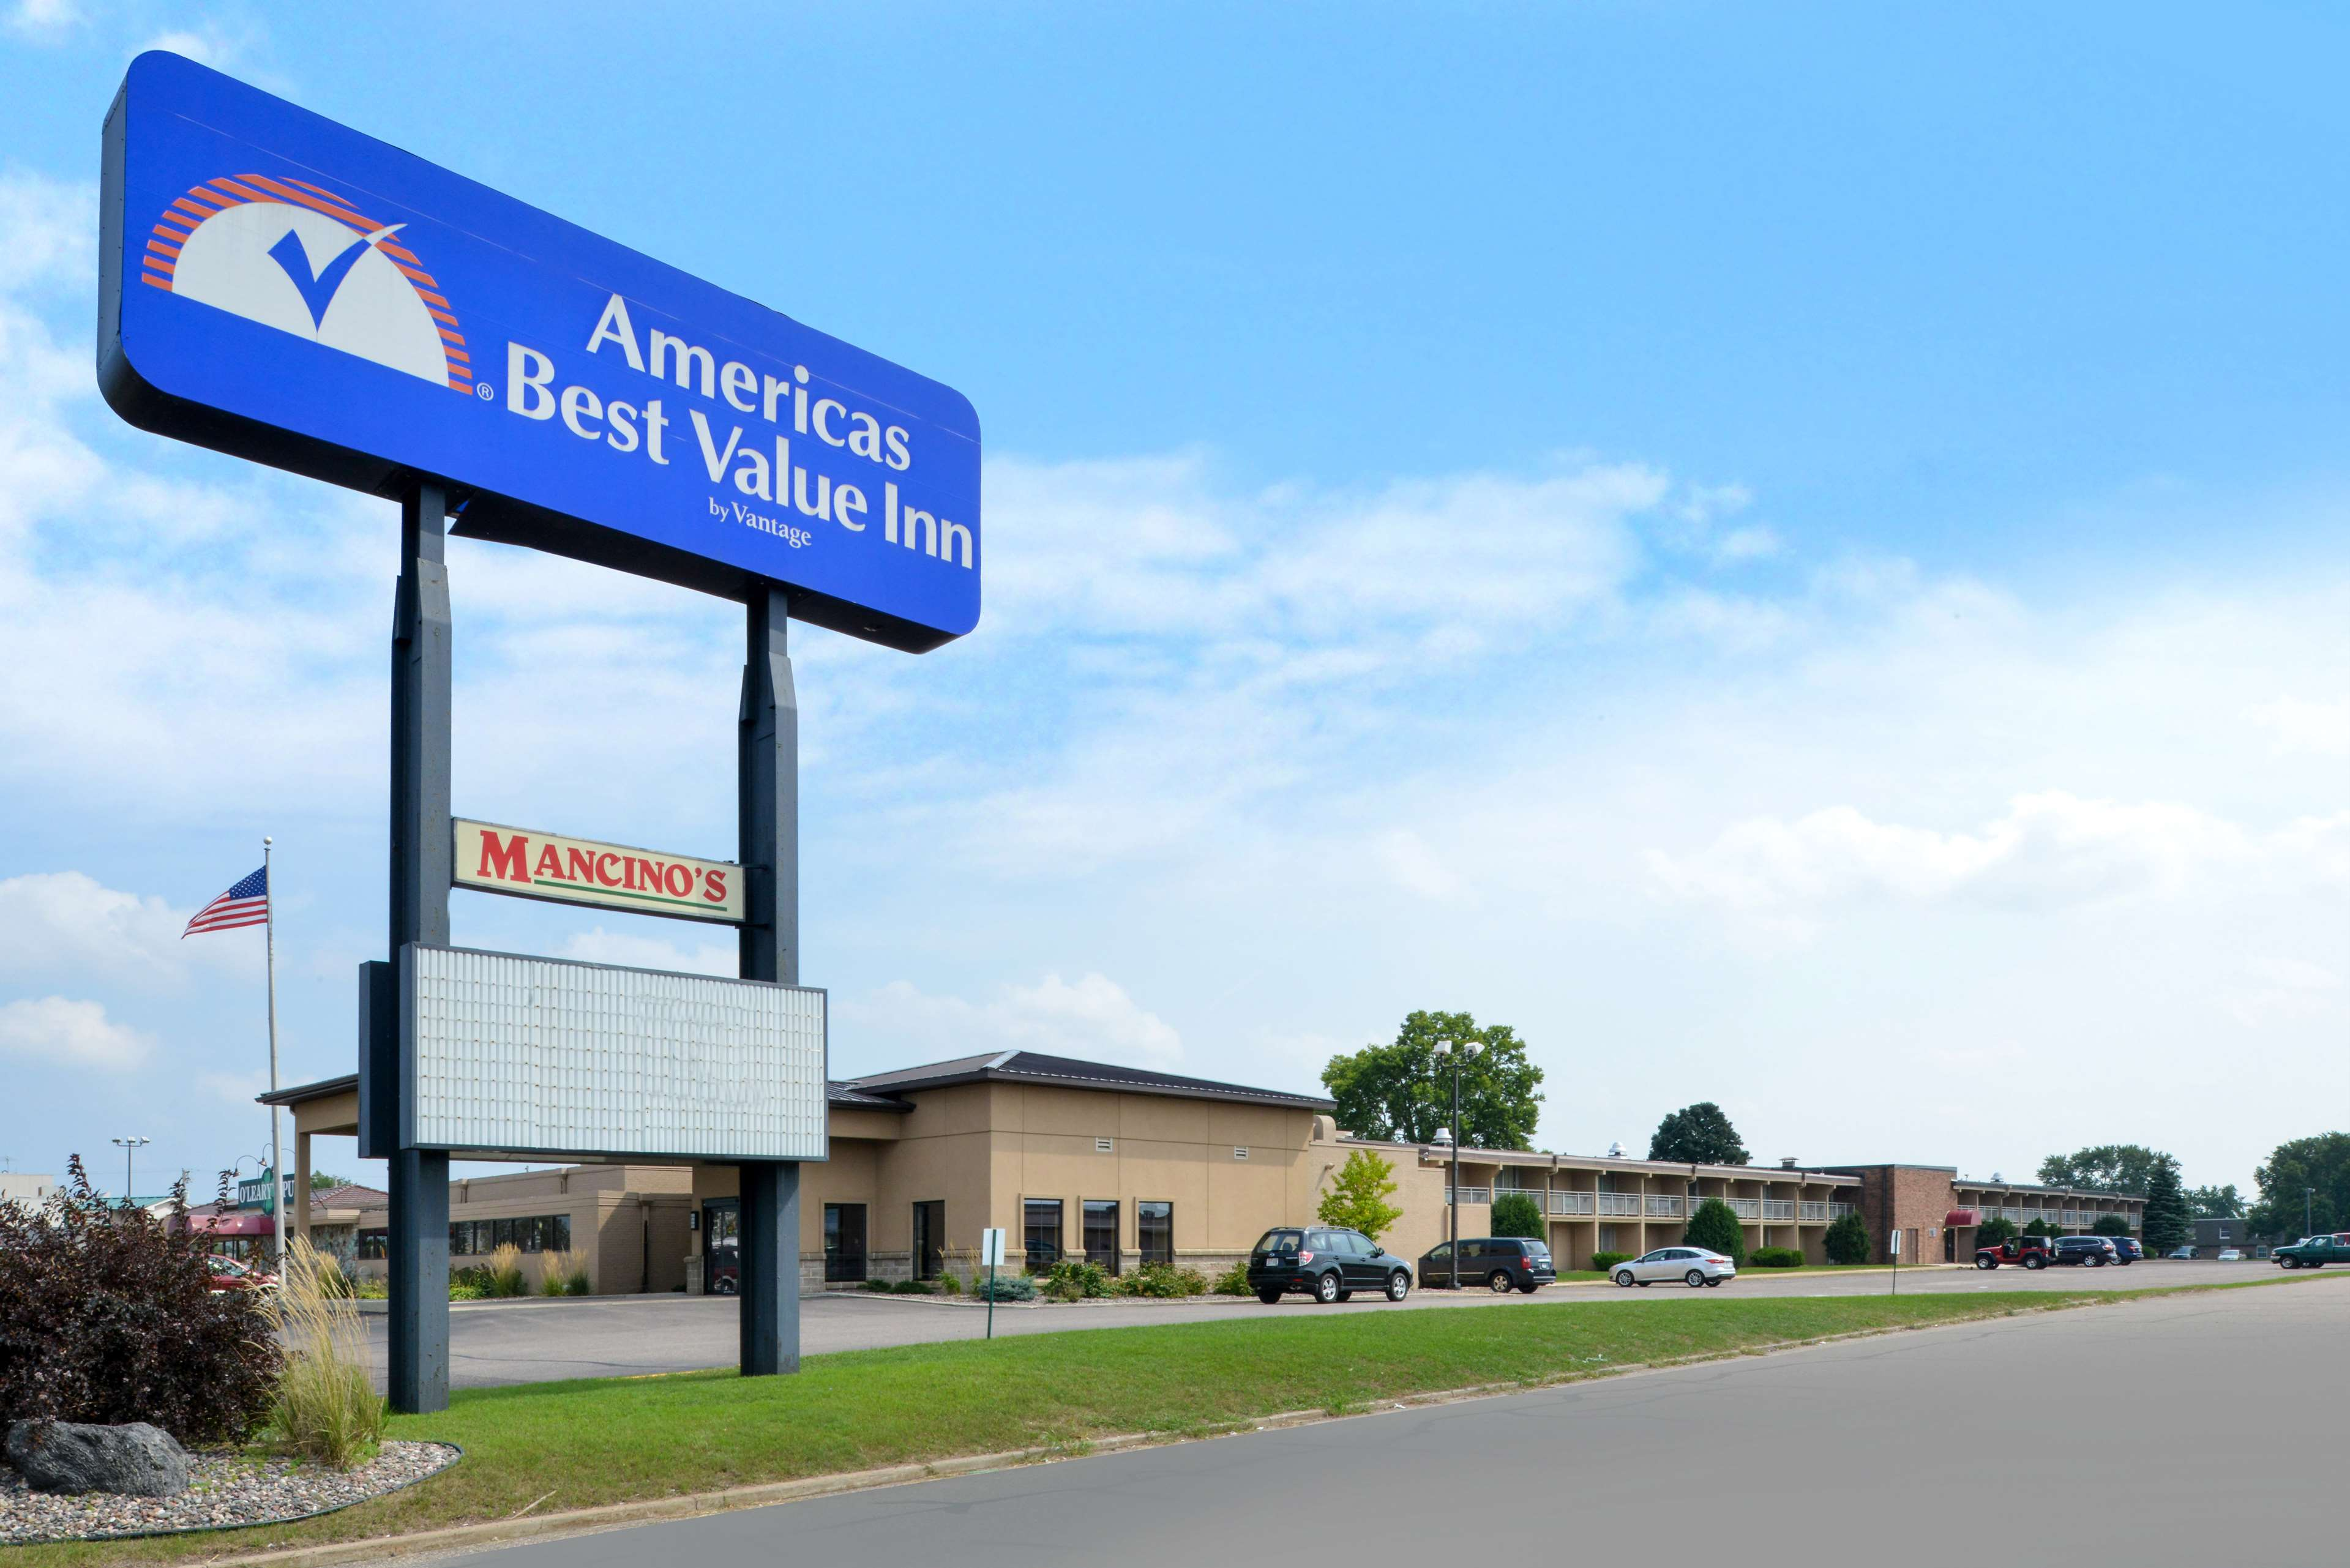 Americas best value inn campus view coupons near me in for Americas best coupon code